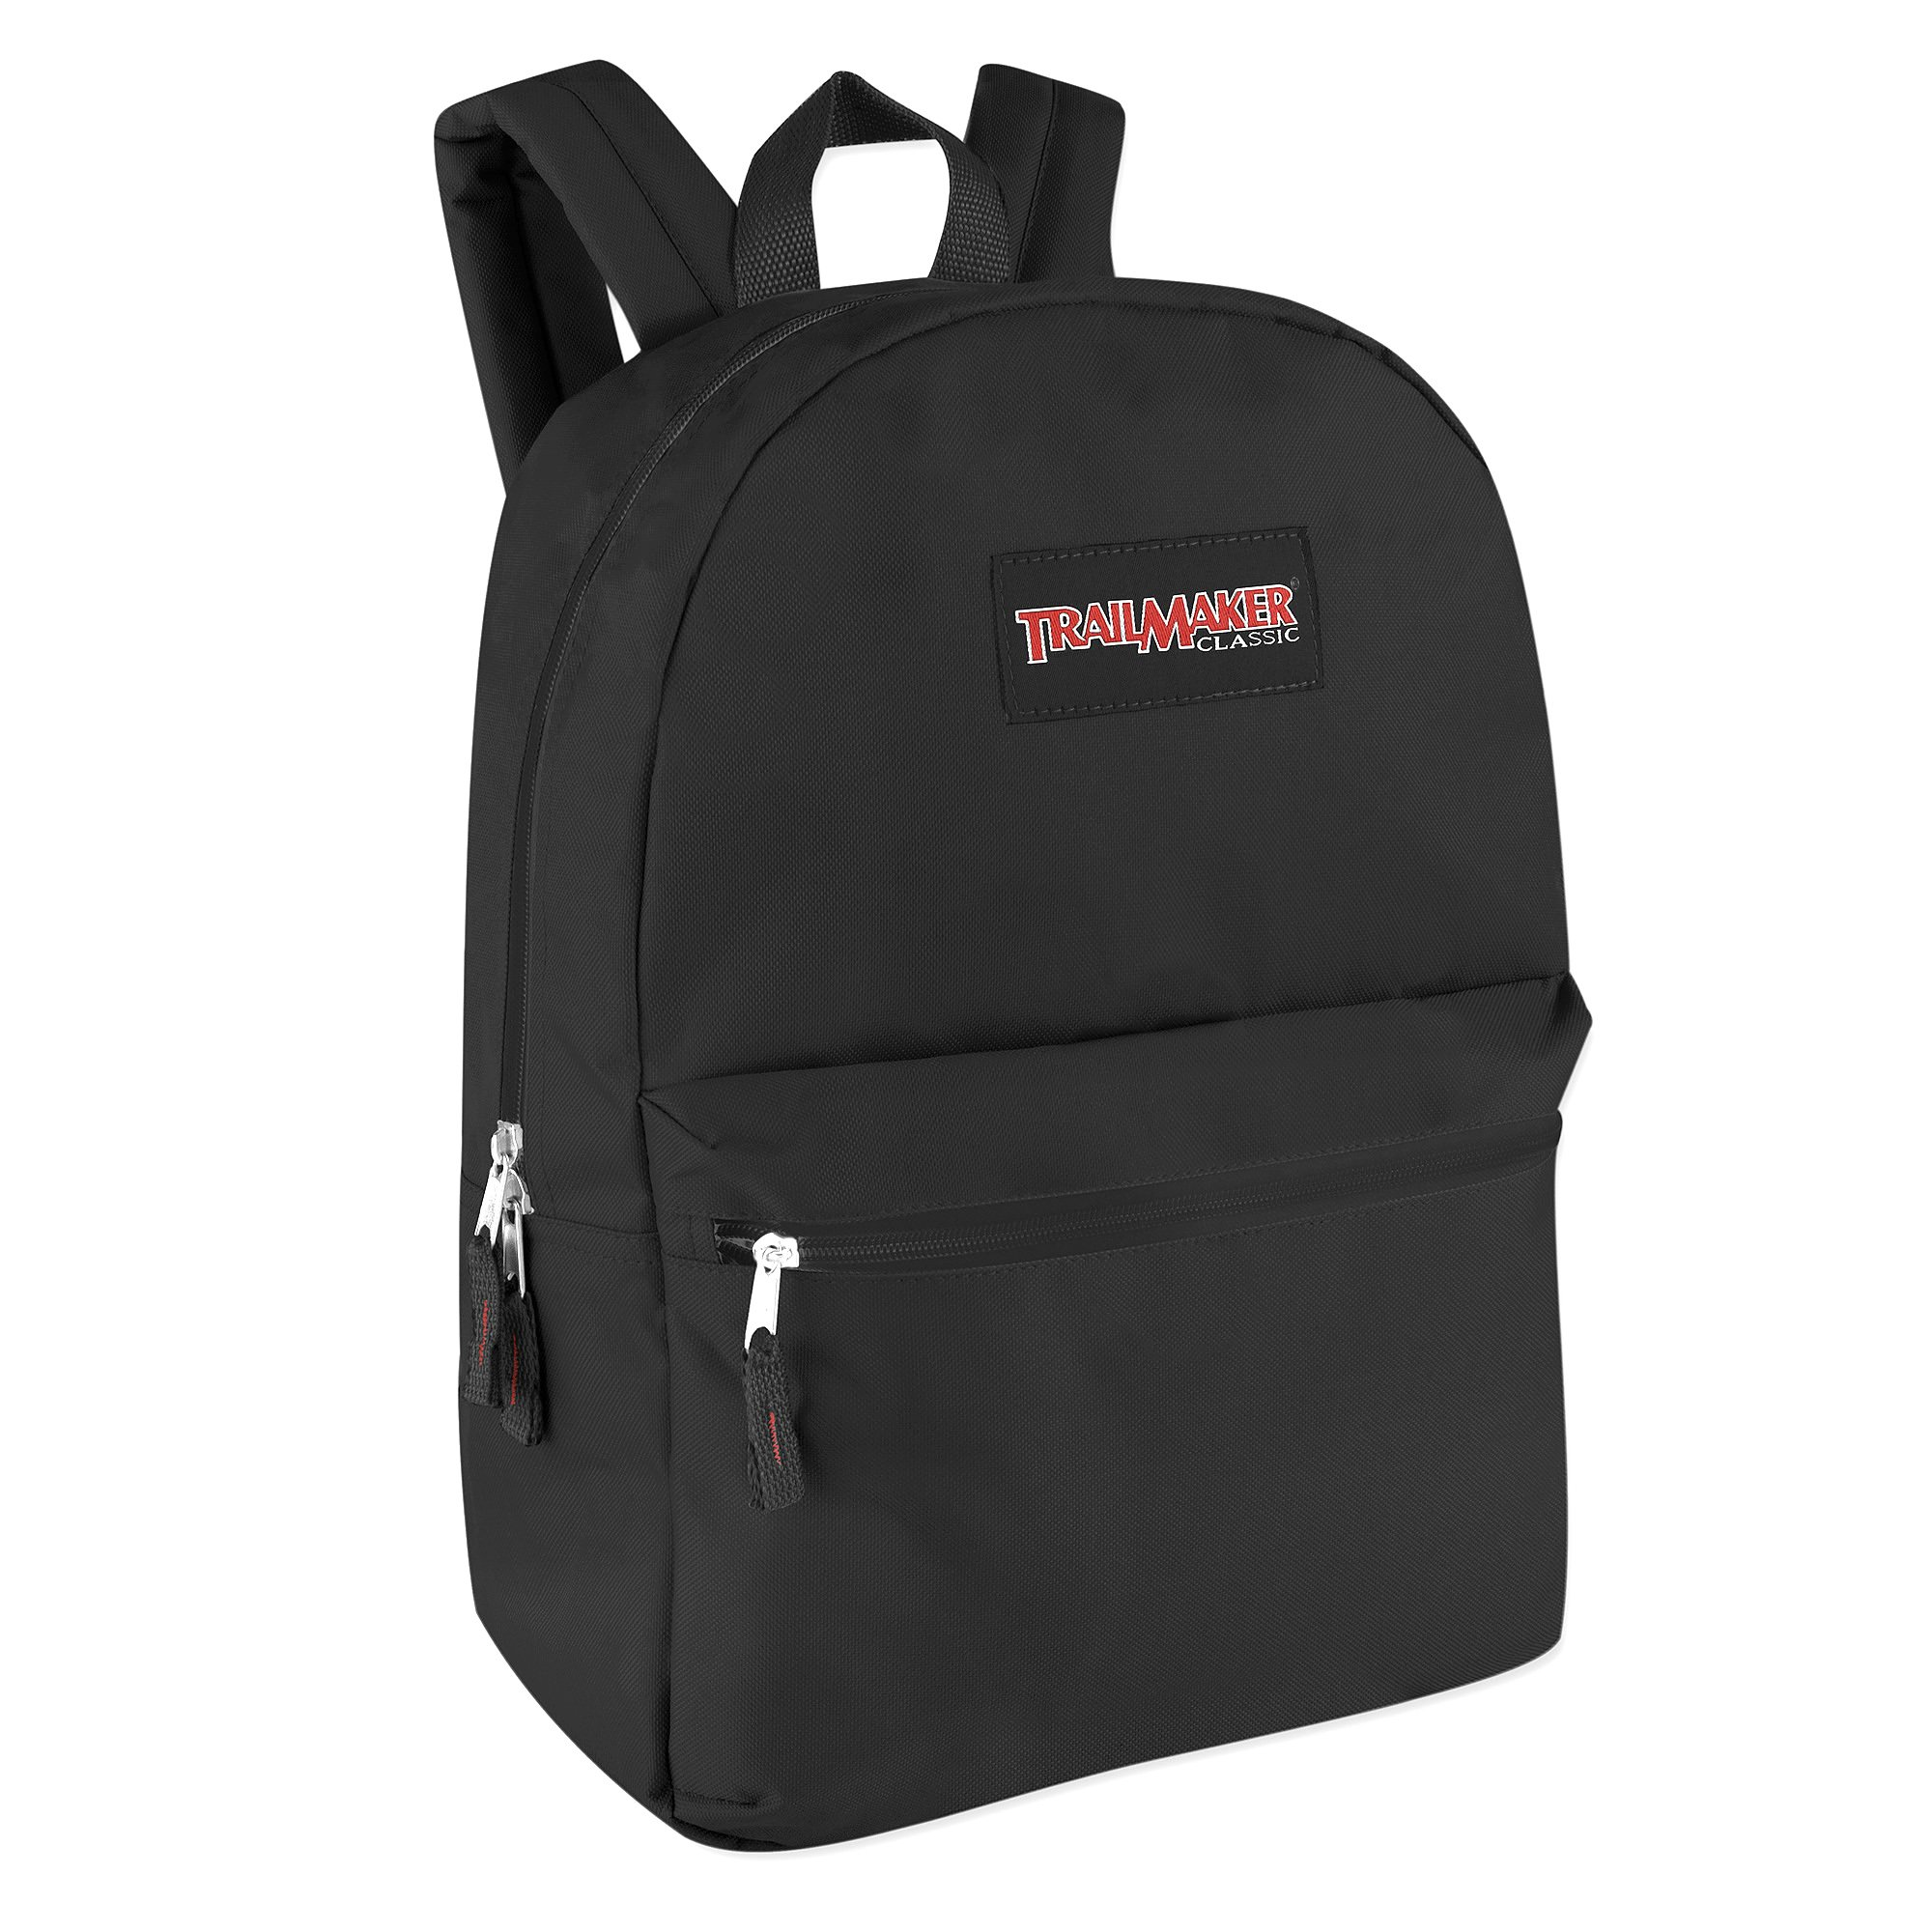 Classic Traditional Solid Backpacks with Adjustable Padded Shoulder Straps (Black) by Trail maker (Image #1)